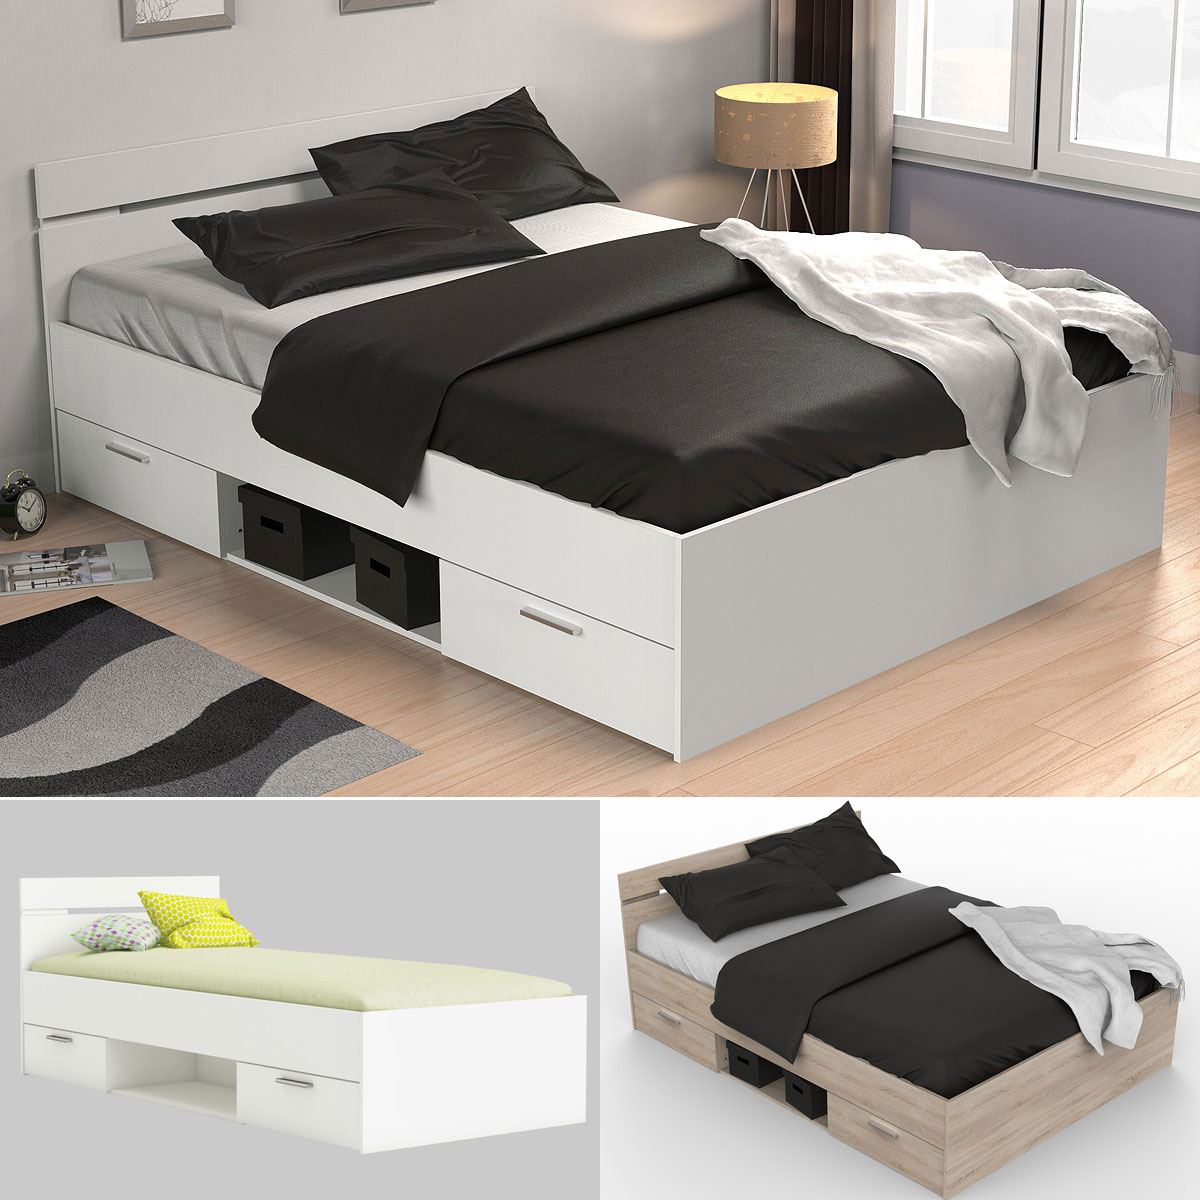 bett michigan jugendbett g stebett mit 2 schubk sten liegefl che 90x200 140x200 ebay. Black Bedroom Furniture Sets. Home Design Ideas